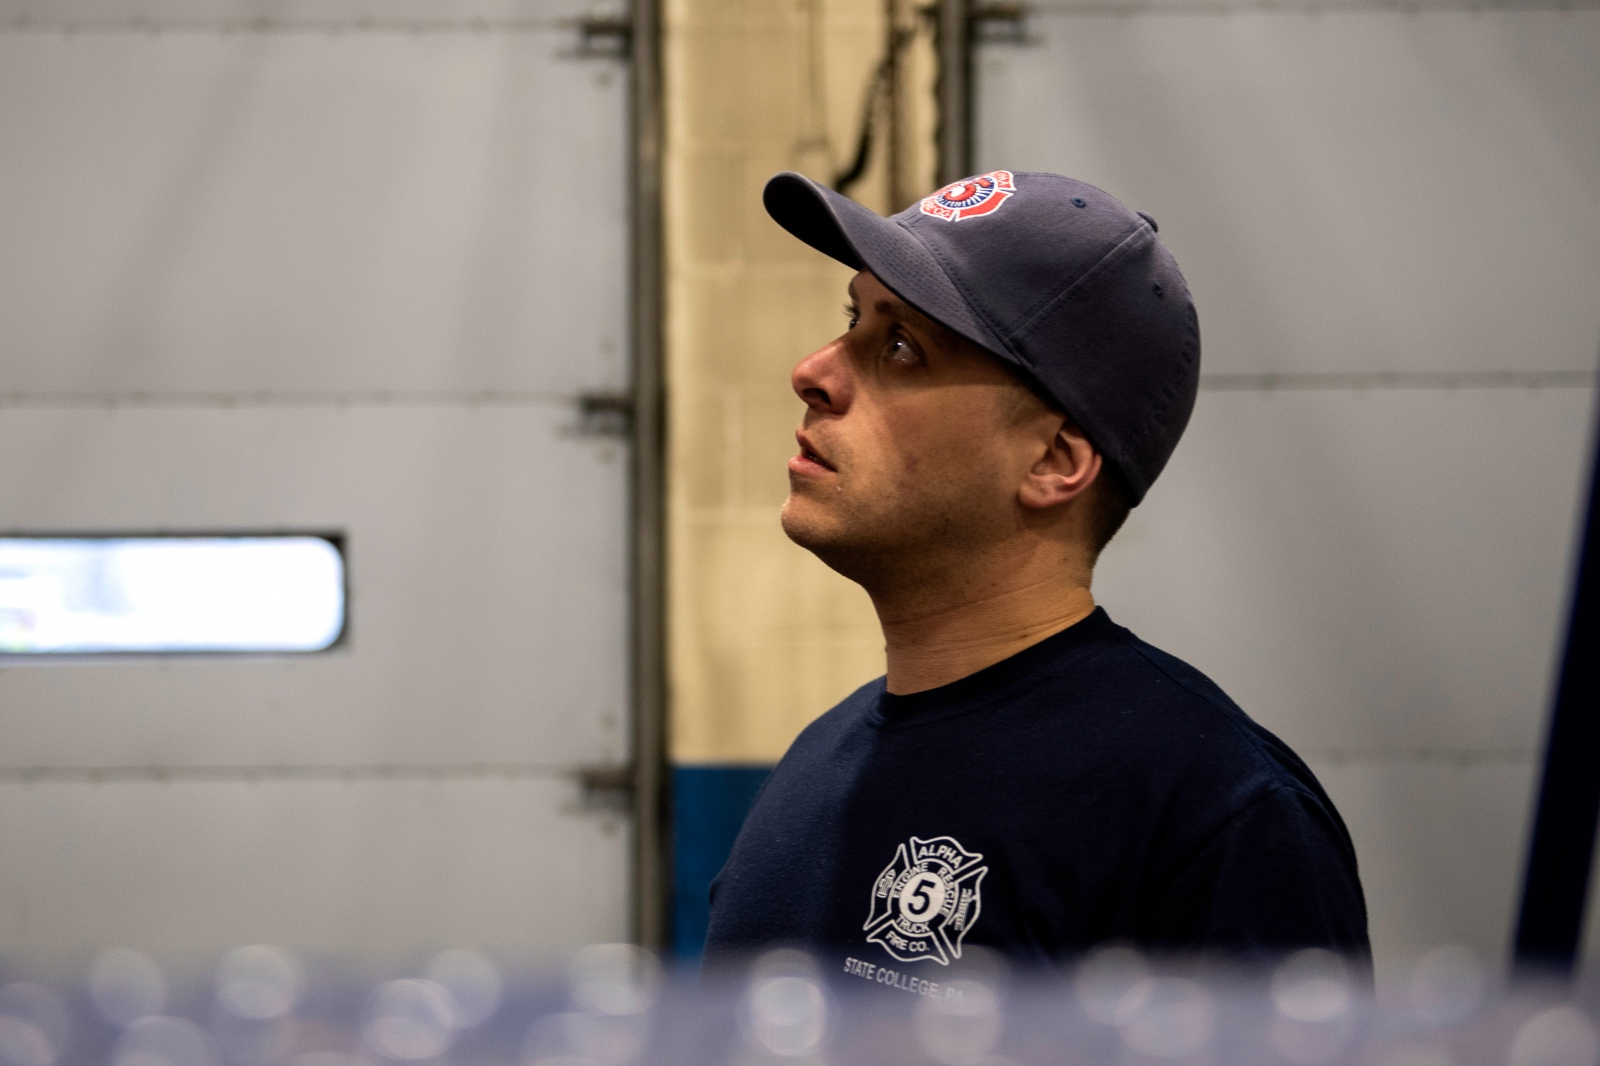 Christophe Cheroret listens to his colleague talking about an error happened on a fire truck at Firehouse, Monday, April 9, 2018, in State College.